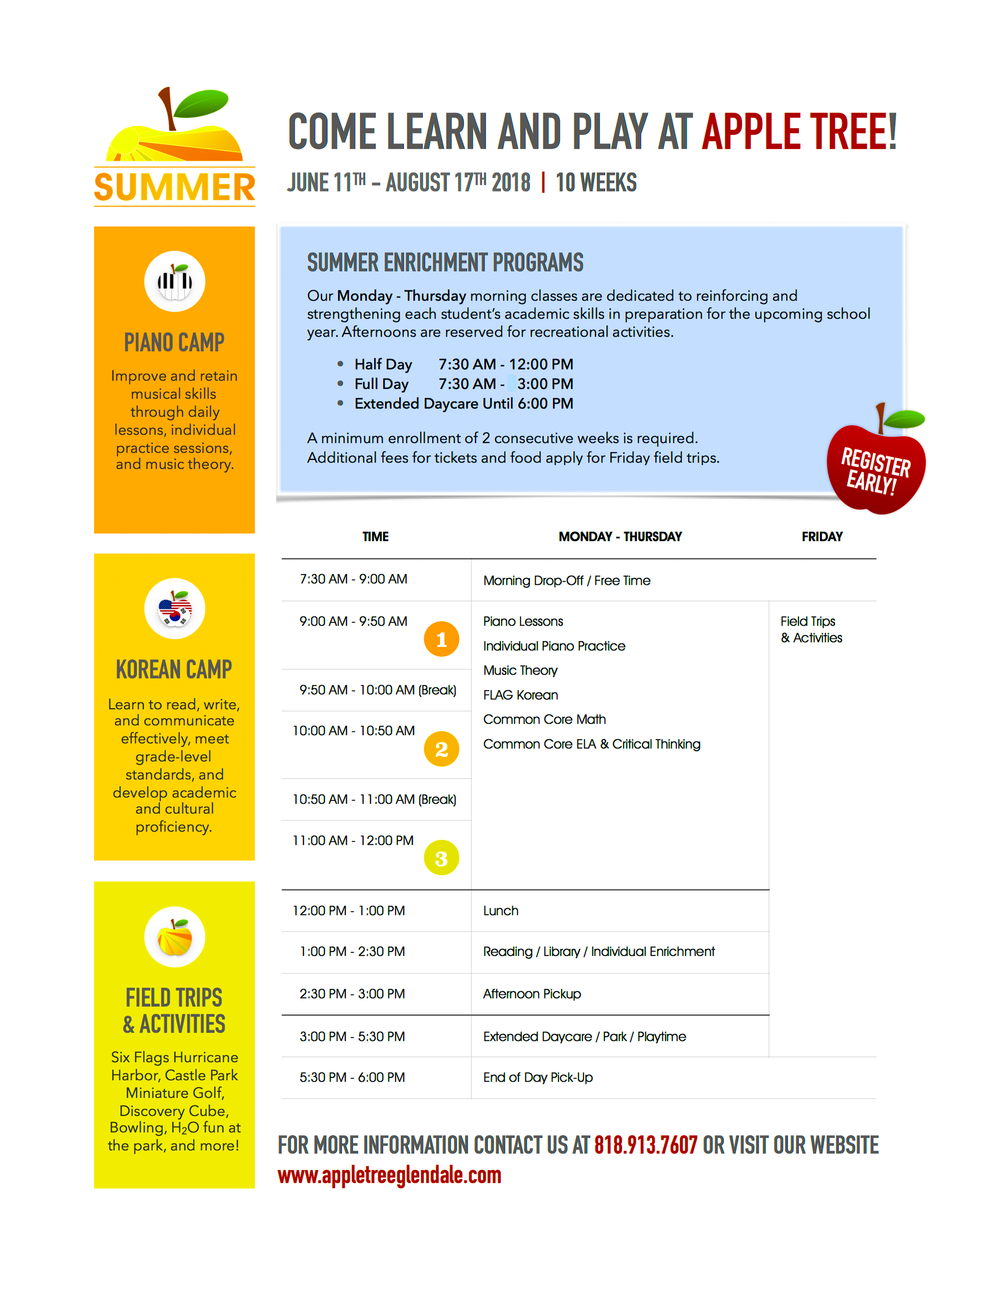 apple-tree-learning-center-summer-2018.png